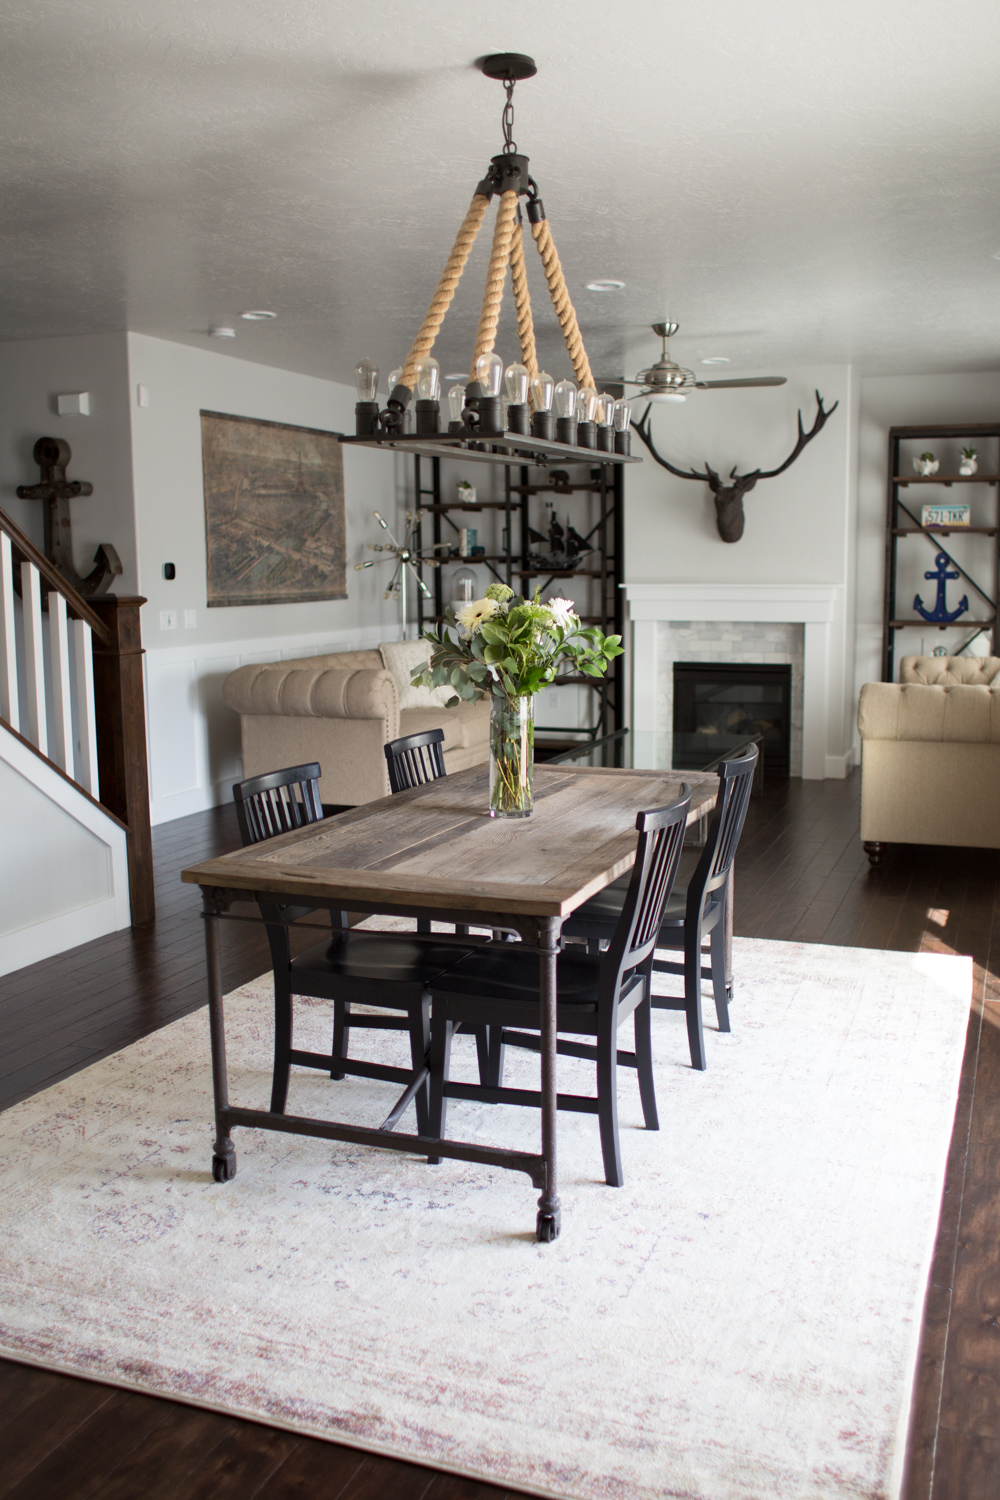 Restoration Hardware Home Design Inspiration